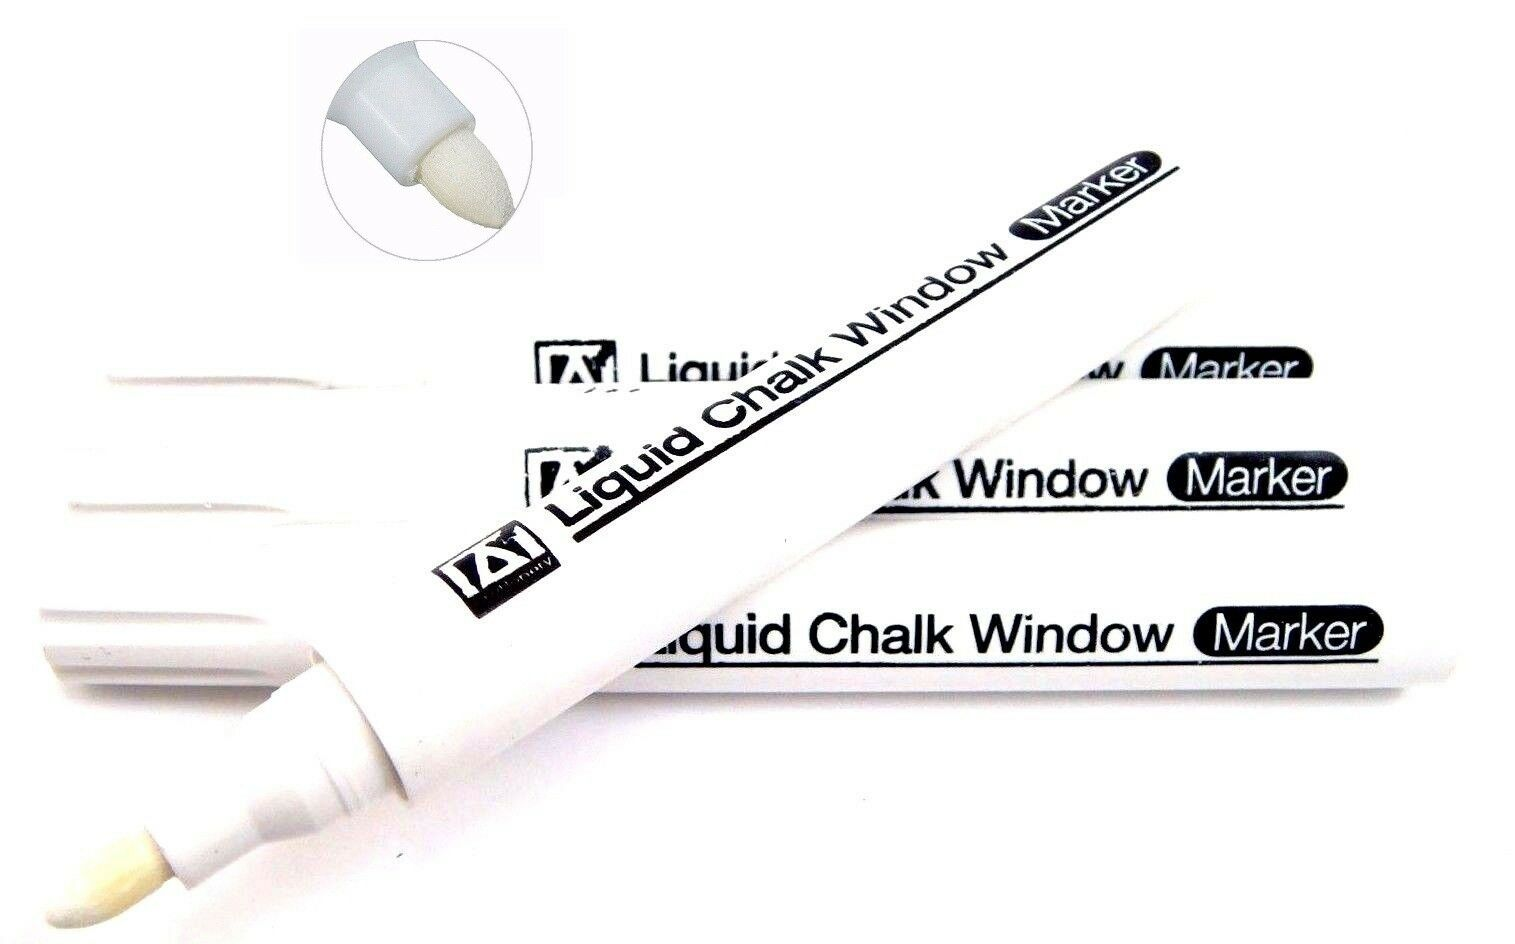 UK 10pcs White Liquid Chalk Pens Marker For Glass Windows Chalkboard Blackboard